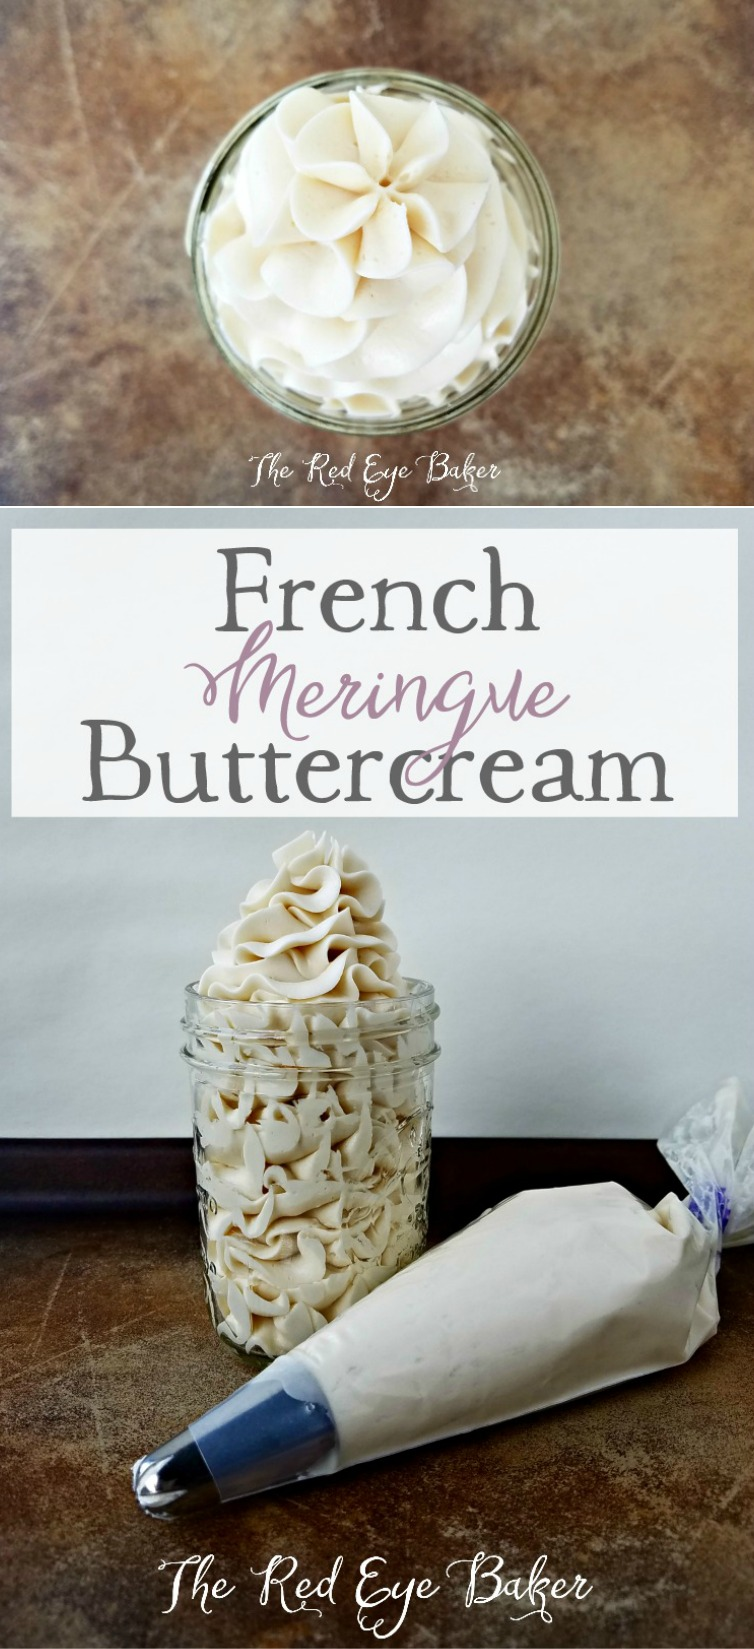 French Meringue Buttercream | I experimented with French Meringue Buttercream this week for the first time and I'm sharing all about this culinary adventure.